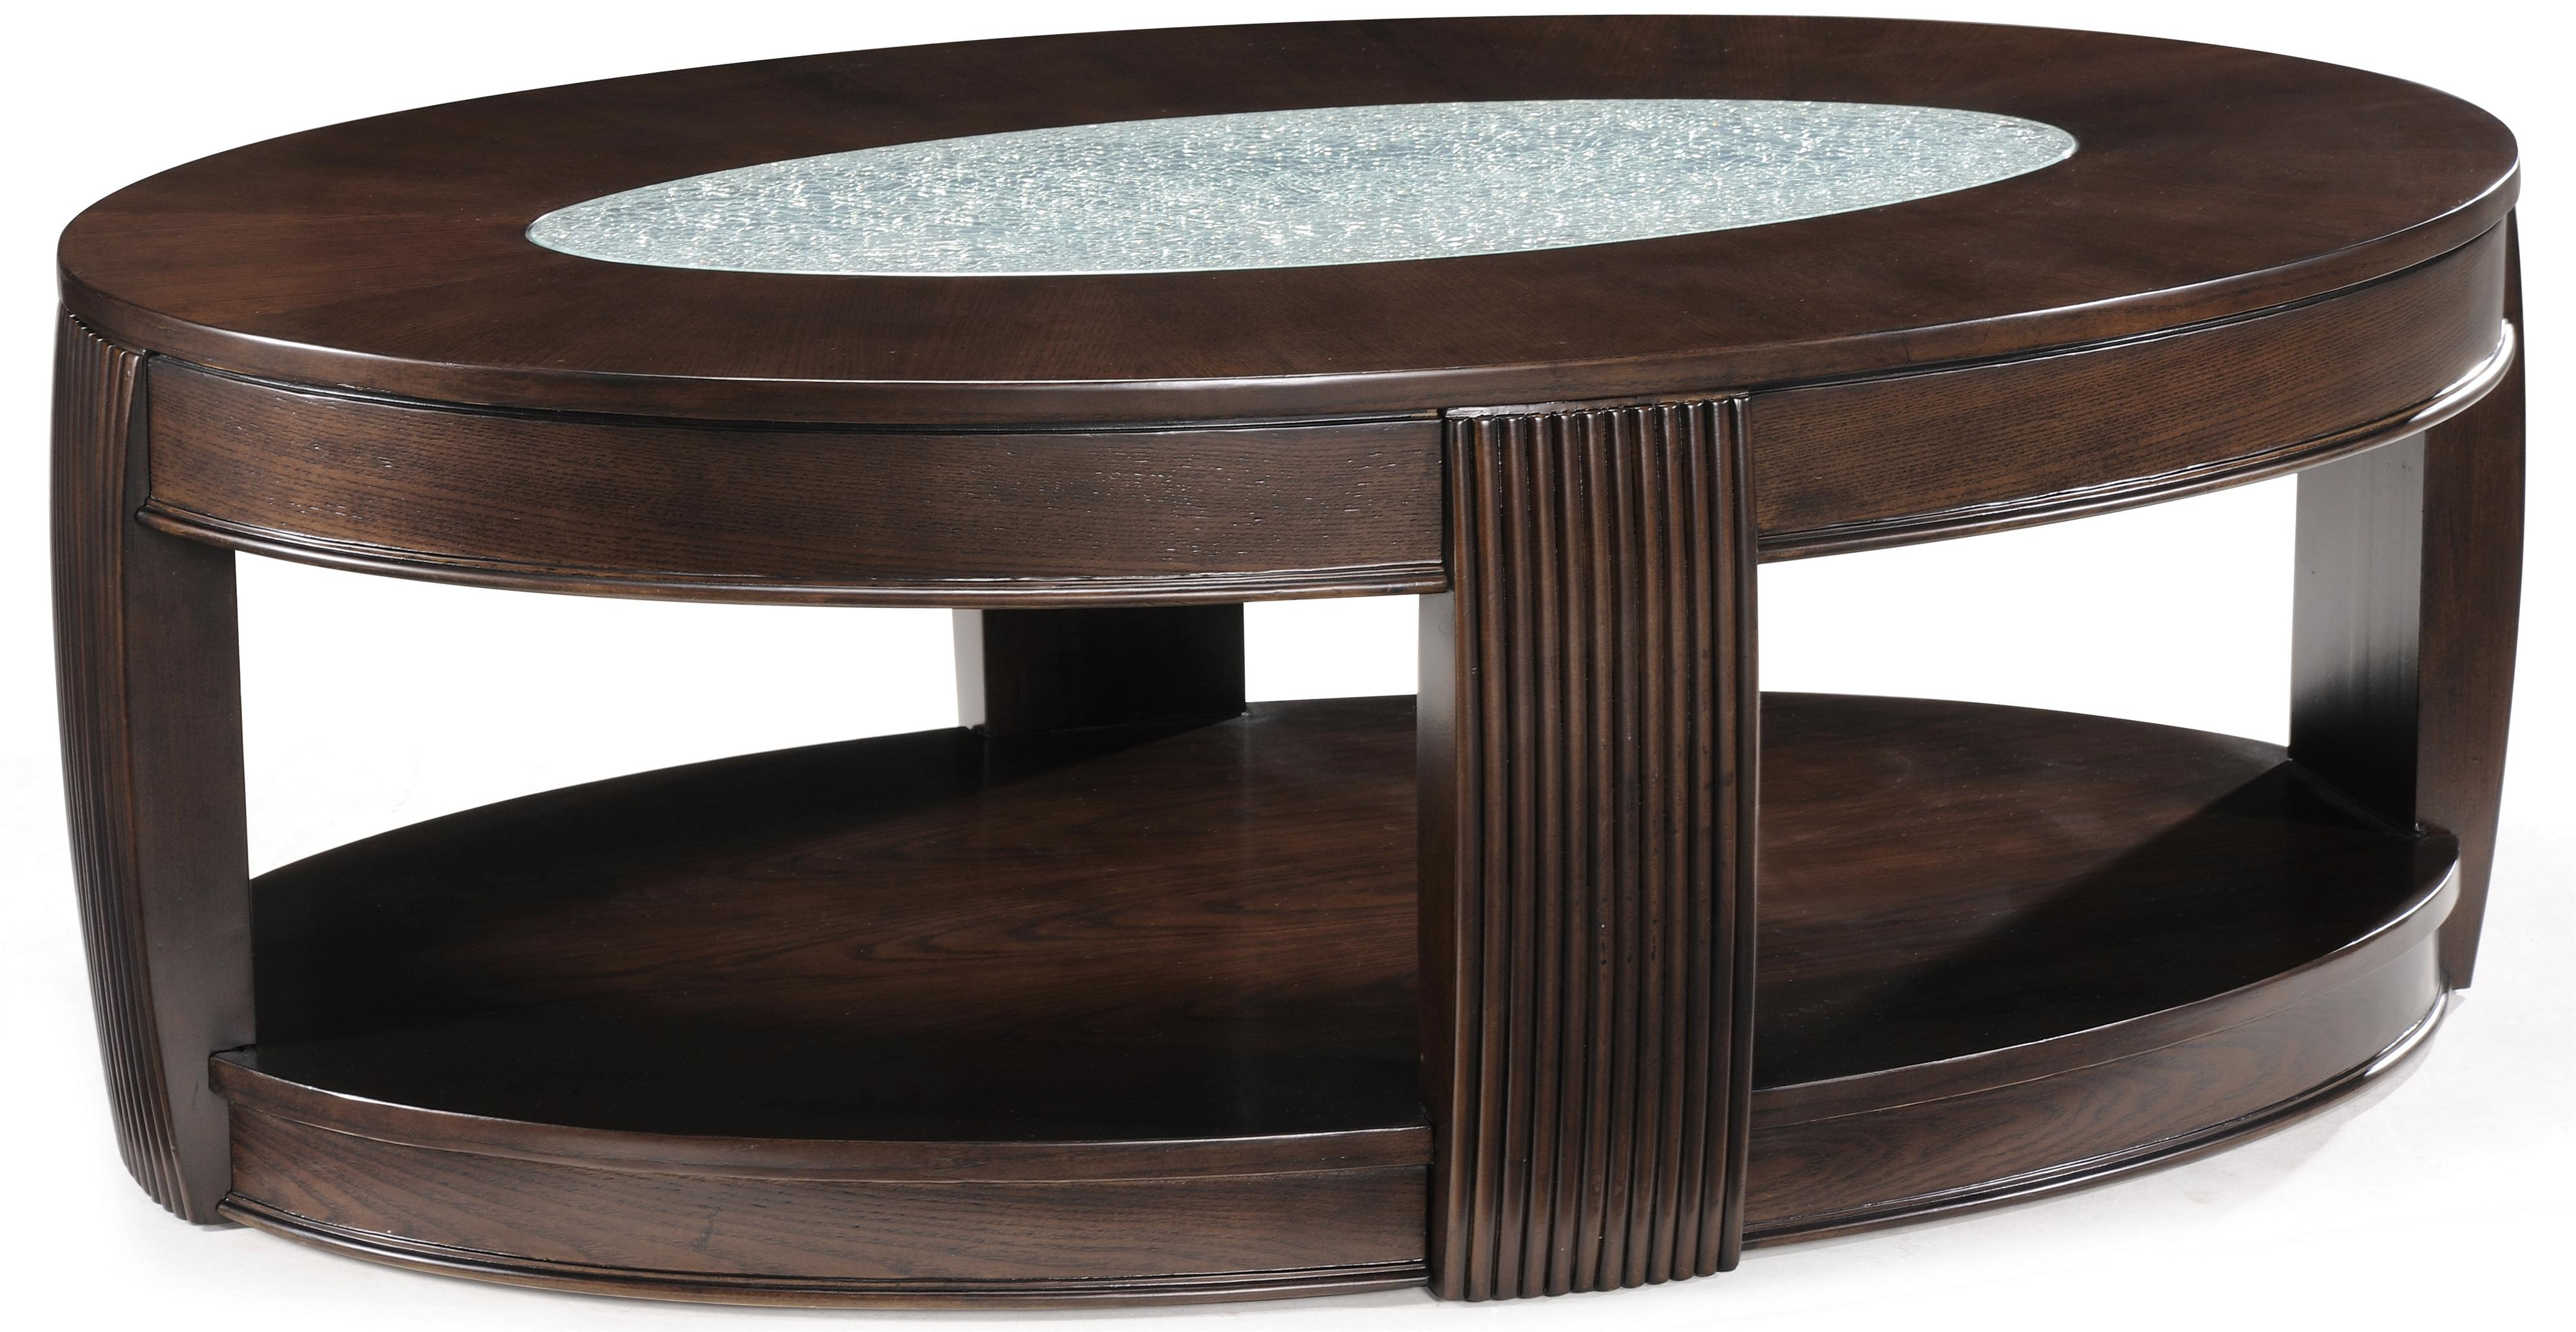 Magnussen Home Ino Oval Cocktail Table - Item Number: T1738-47